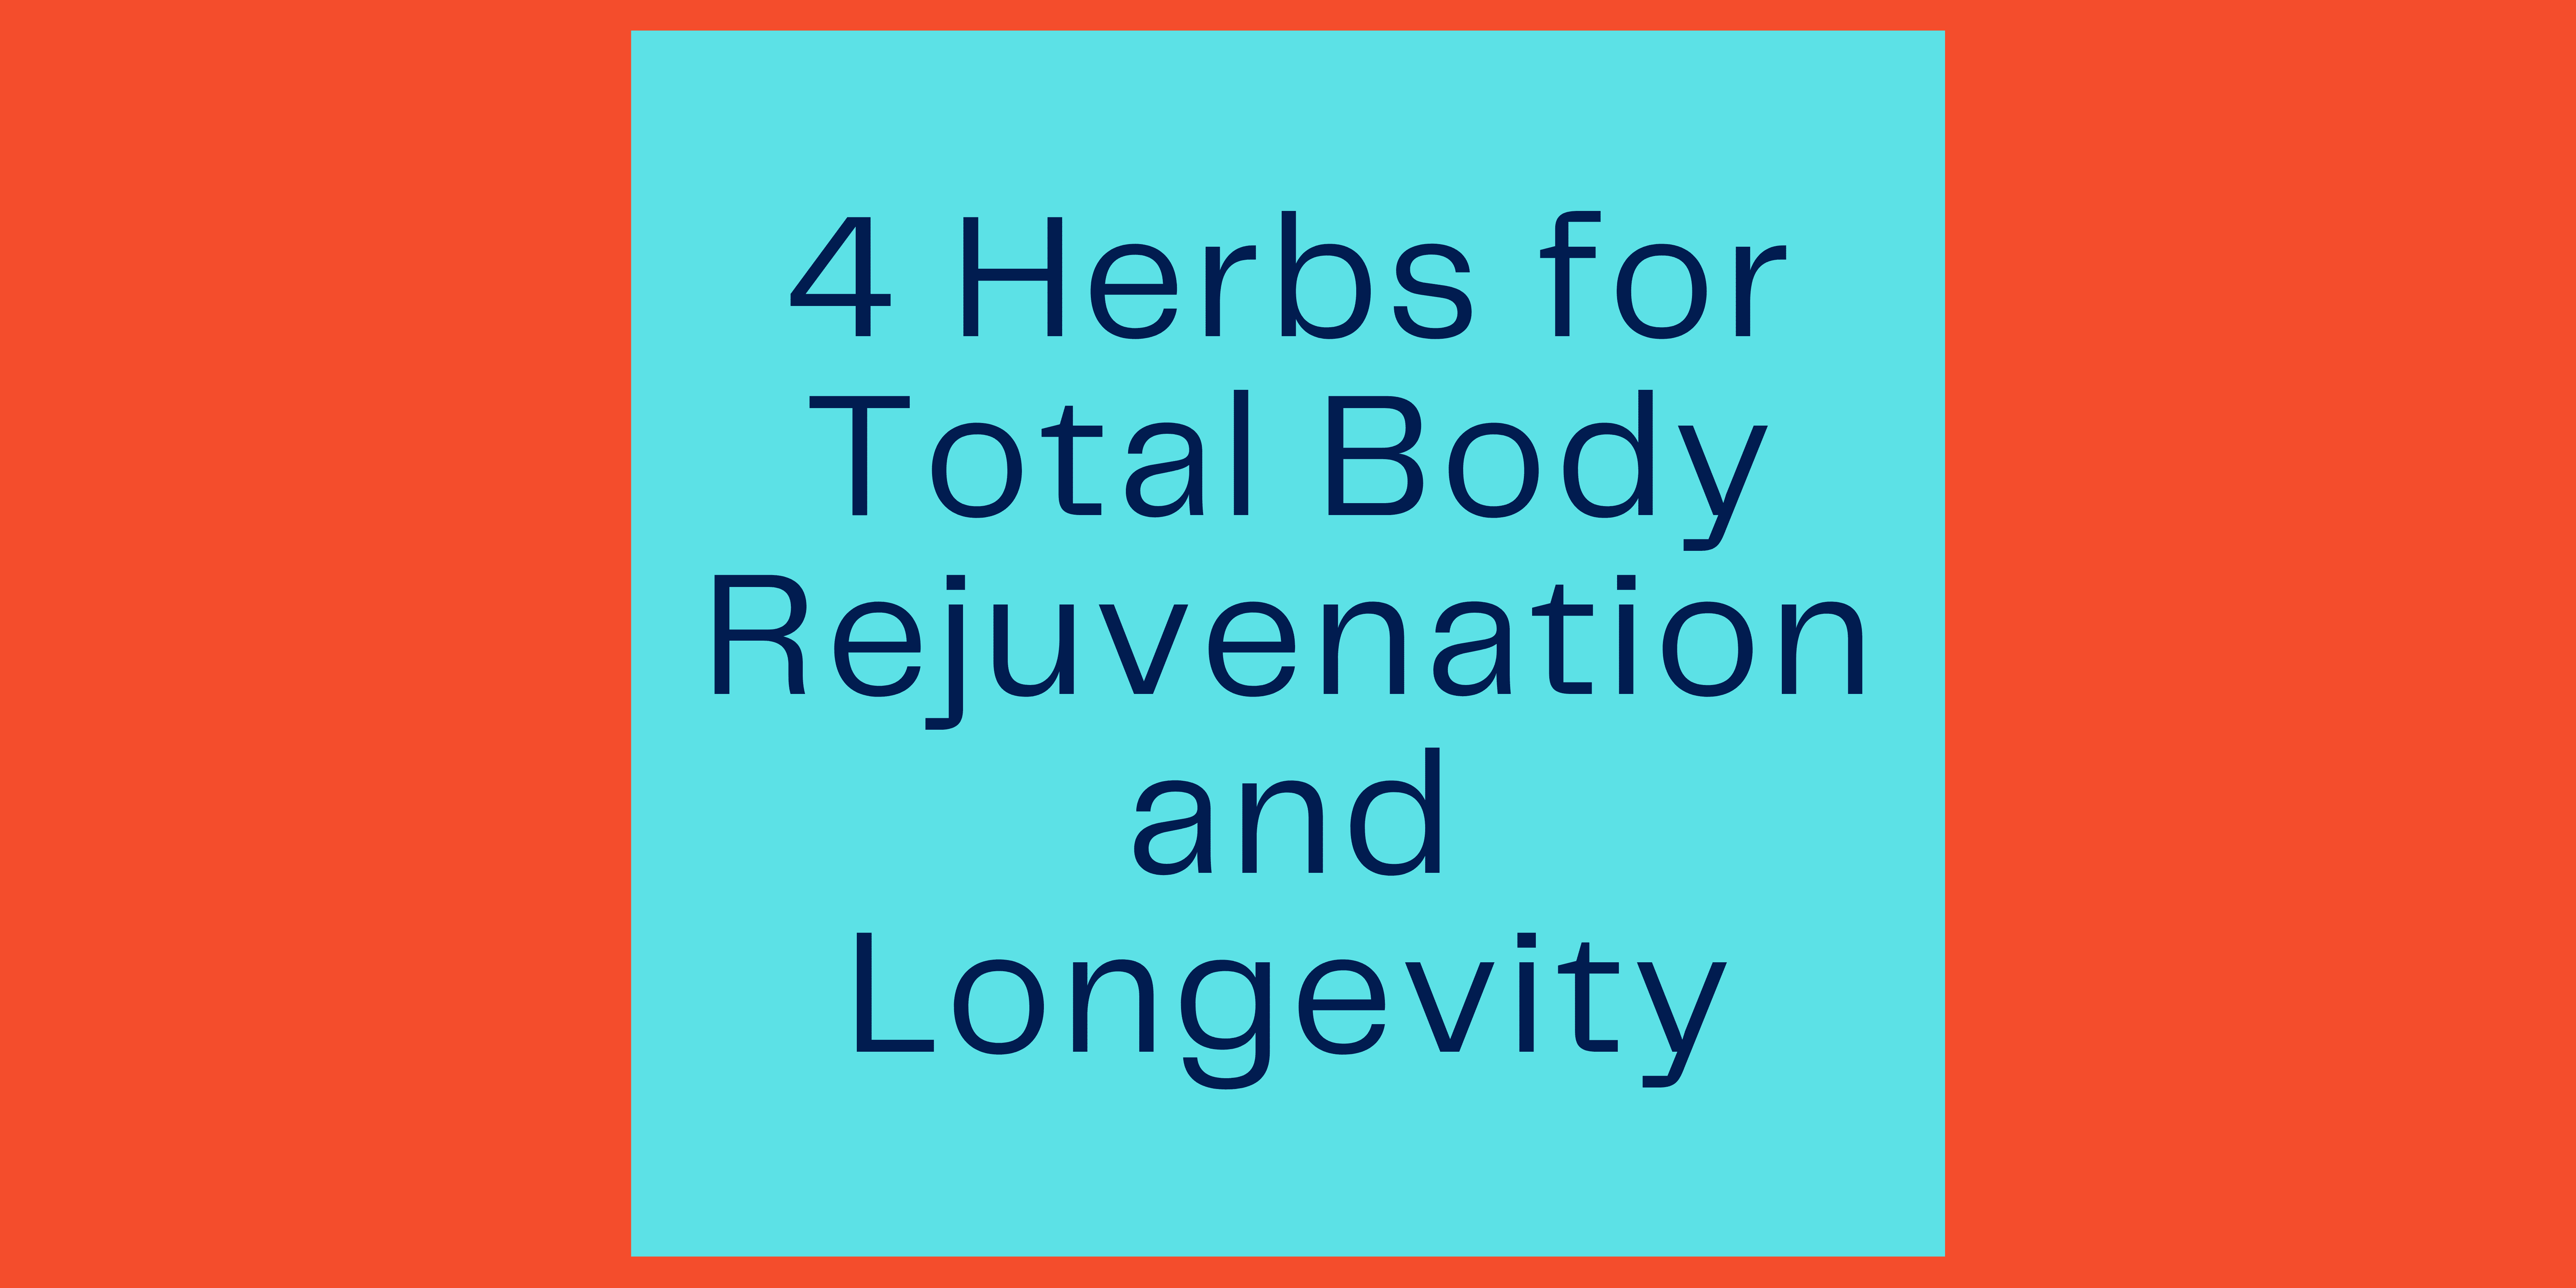 Herbs for Total Body Rejuvenation - Carolyn Daughters